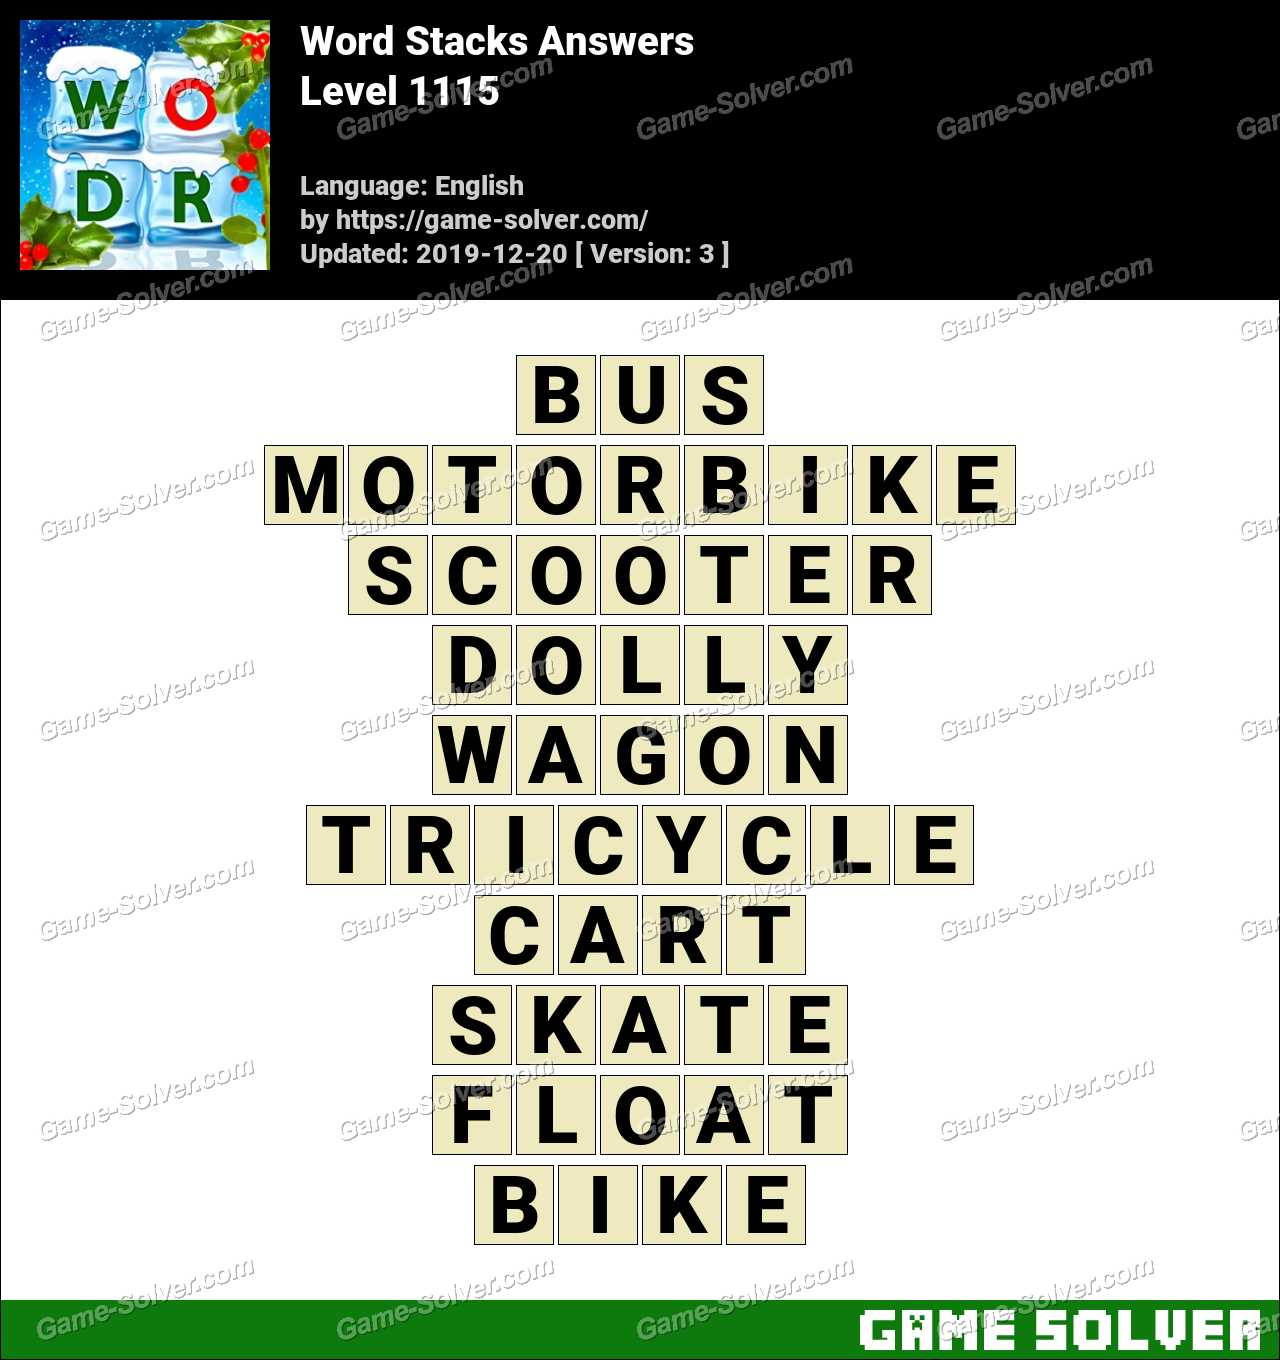 Word Stacks Level 1115 Answers